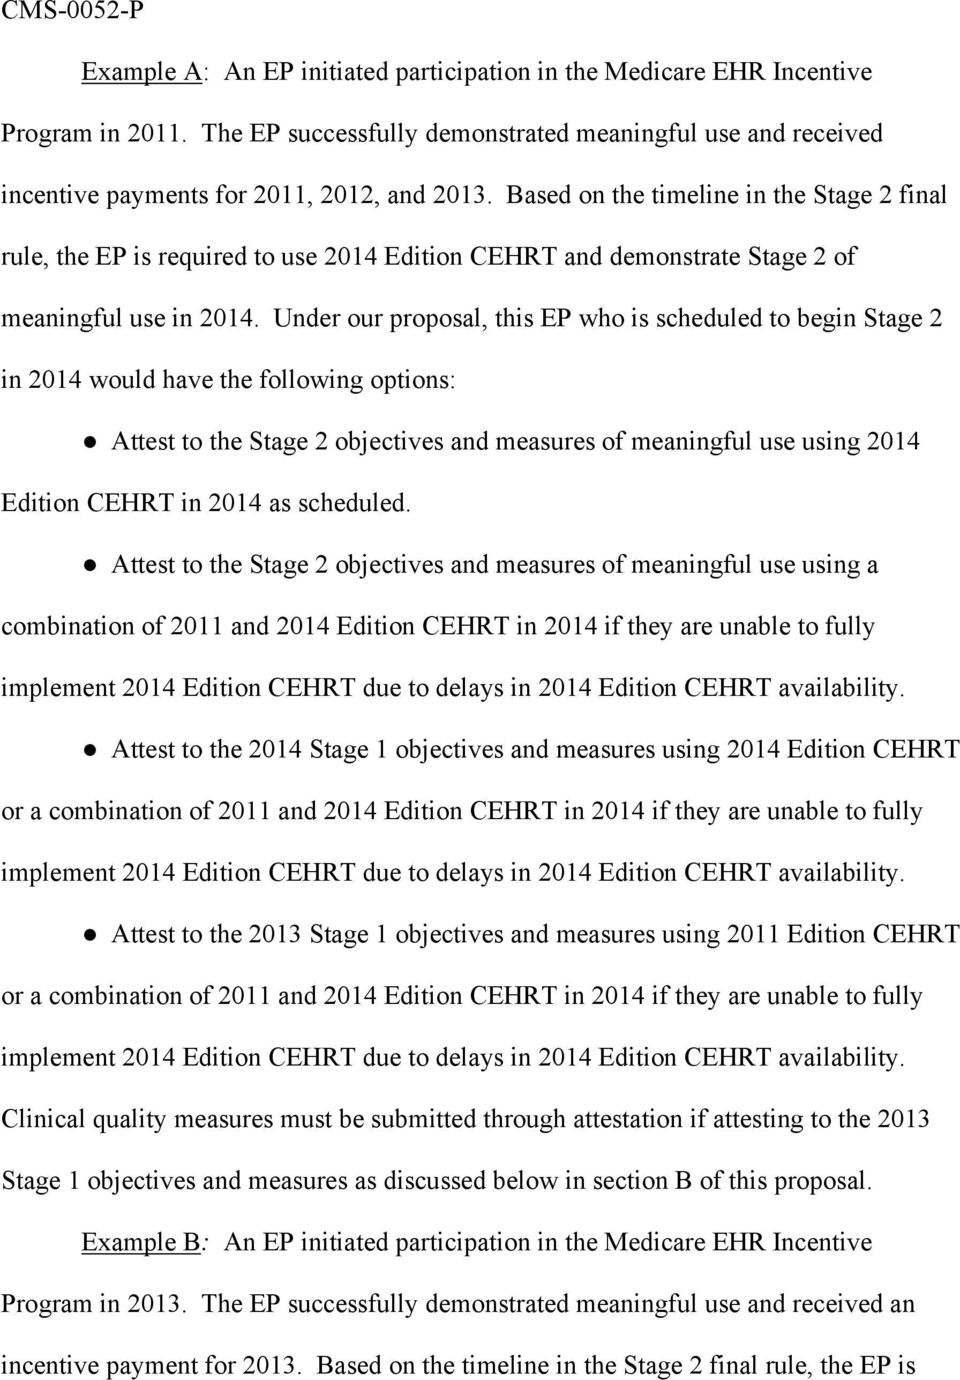 Under our proposal, this EP who is scheduled to begin Stage 2 in 2014 would have the following options: Attest to the Stage 2 objectives and measures of meaningful use using 2014 Edition CEHRT in